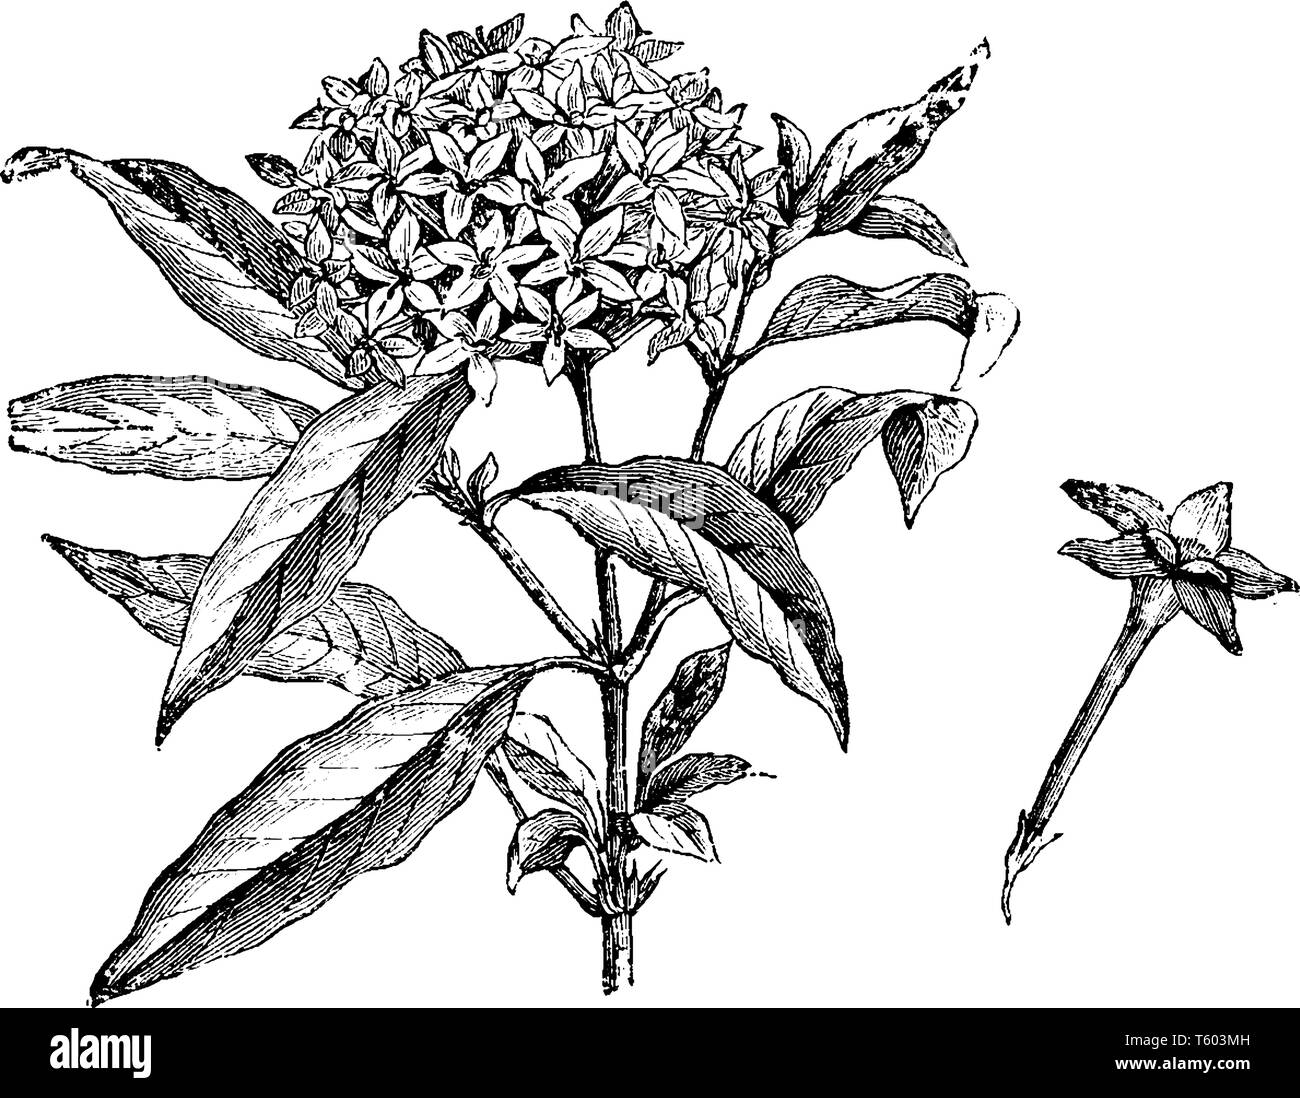 The plants have hairy green leaves and clusters of flowers in shades of red, white, pink, and purple. A bunch of flowers are blossoms at the top, vint - Stock Image